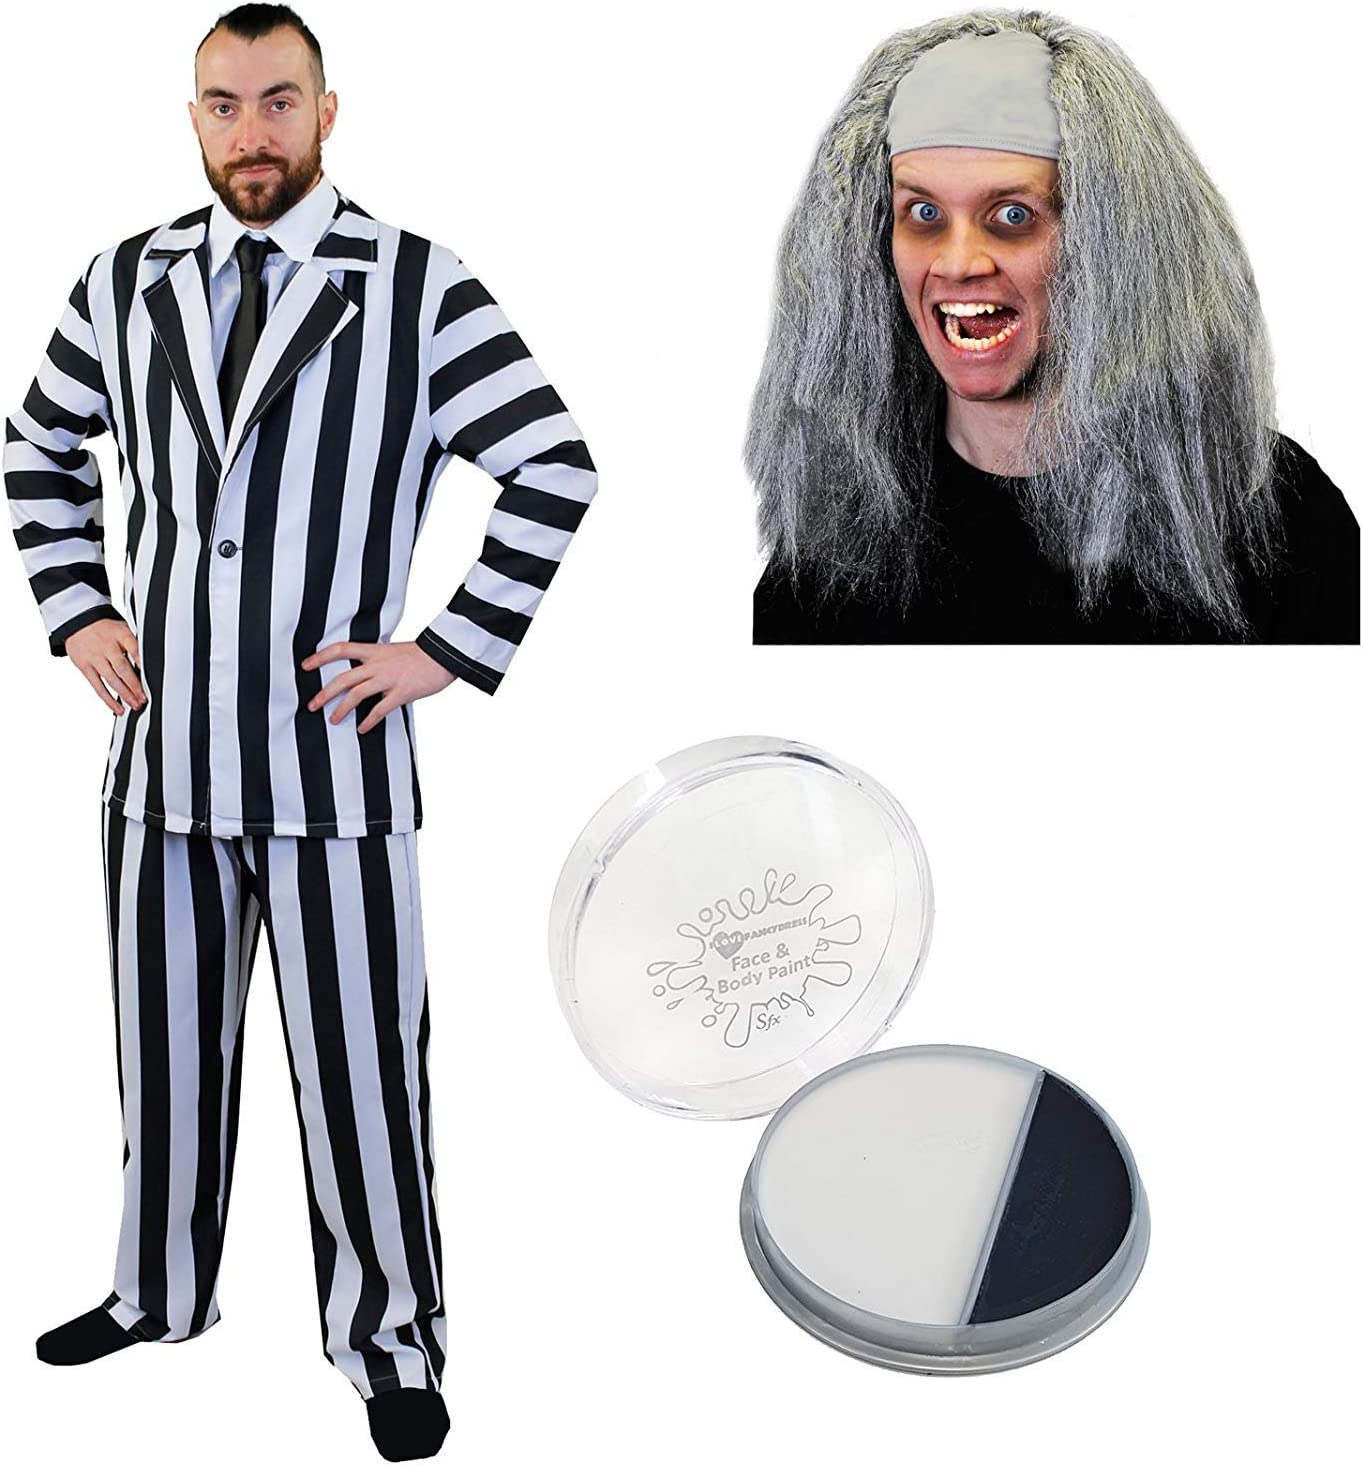 Striped Costume Shirt